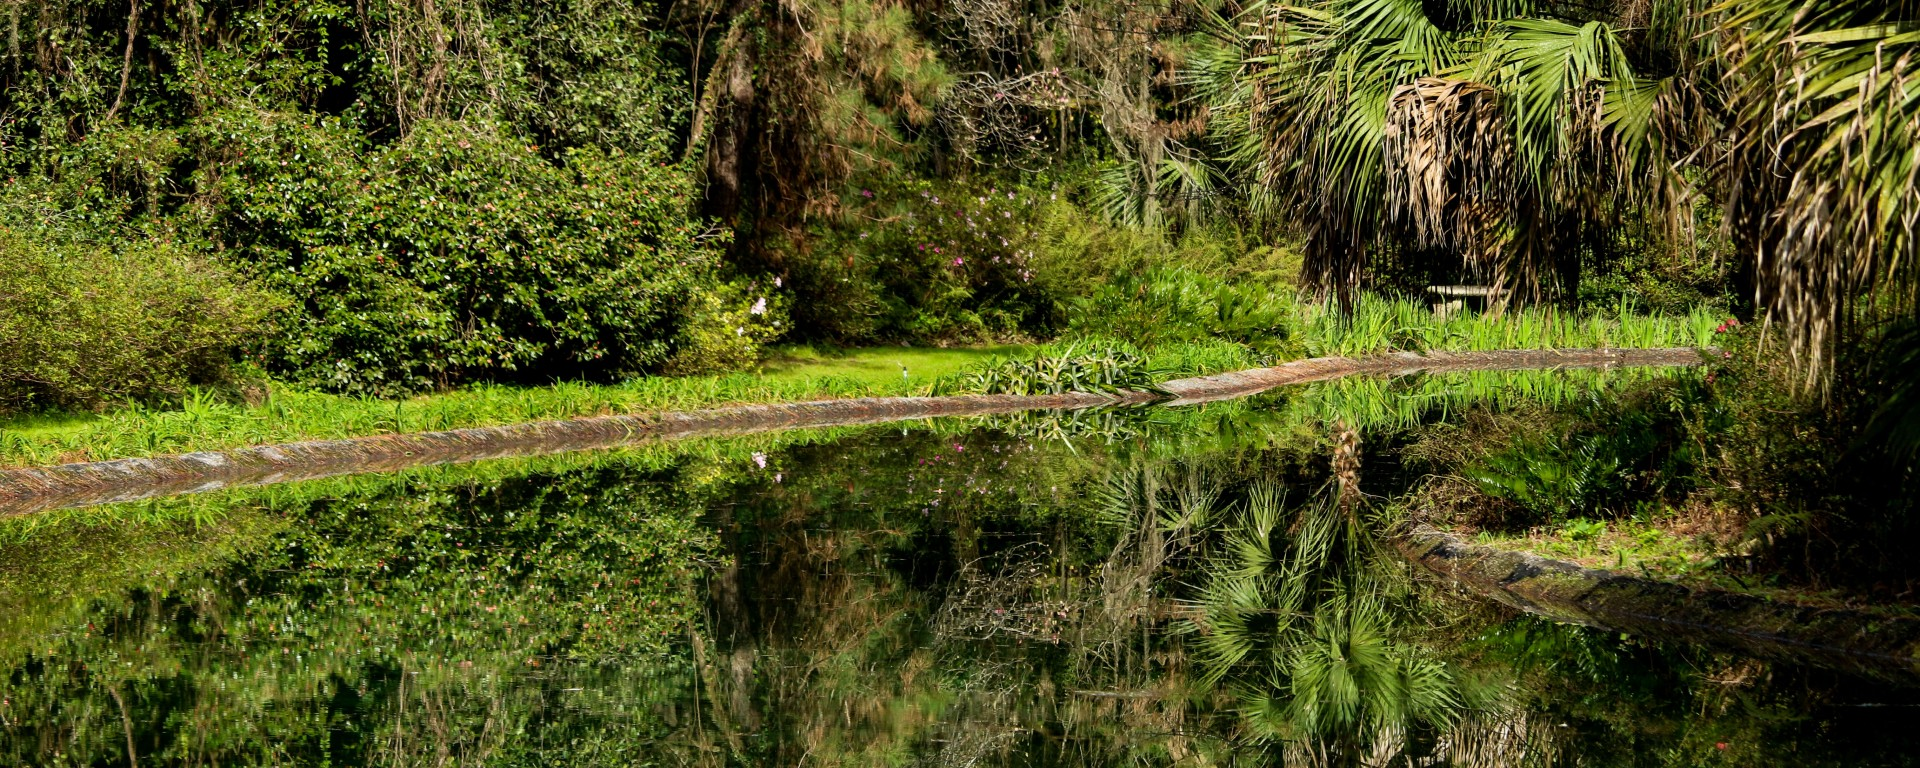 alfred maclay state parks, florida state park, florida, nature